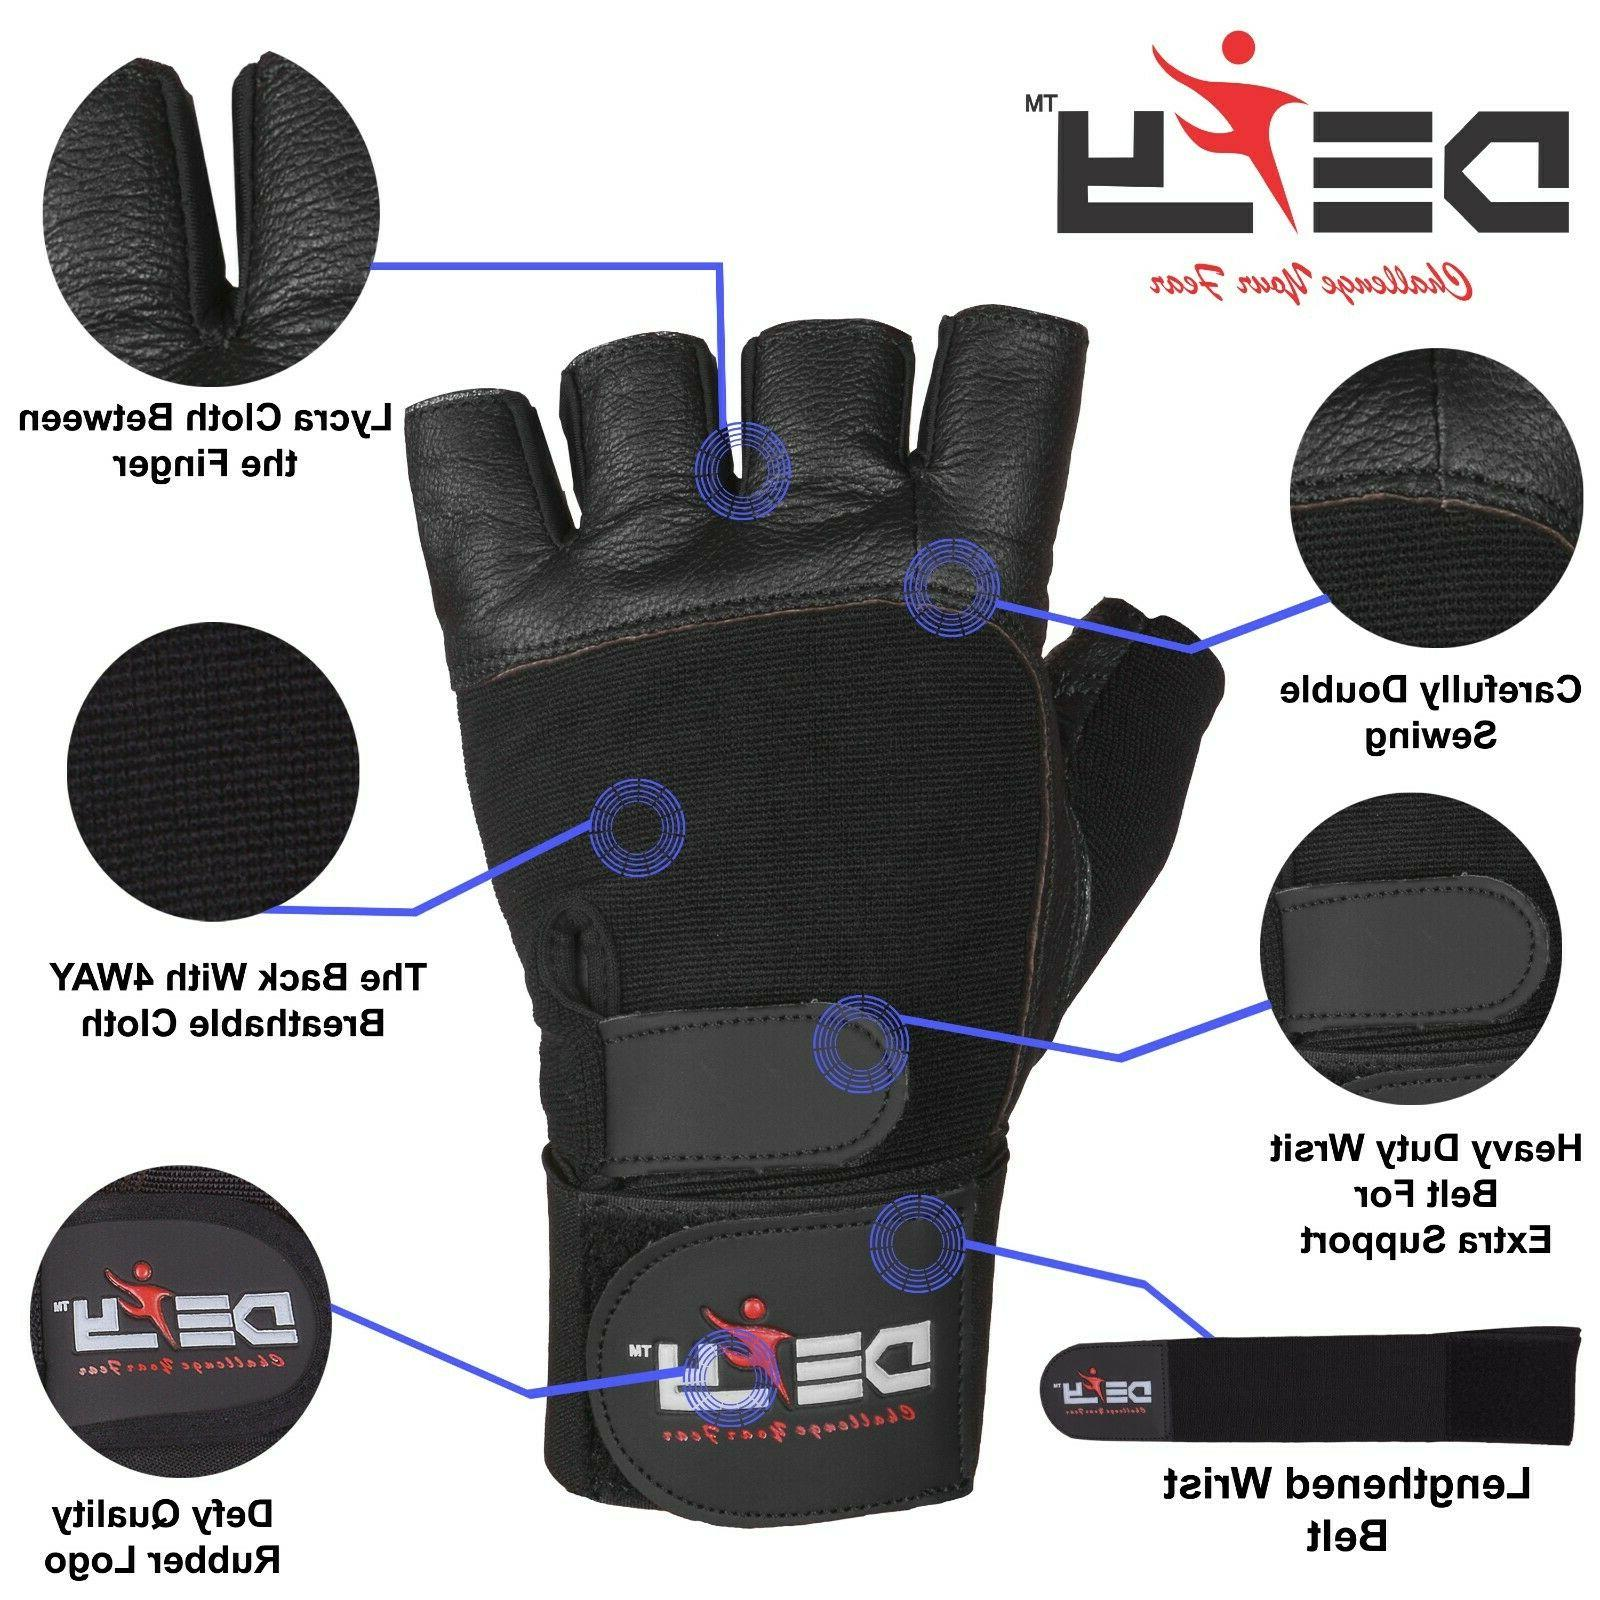 DEFY Gym Training Wrist